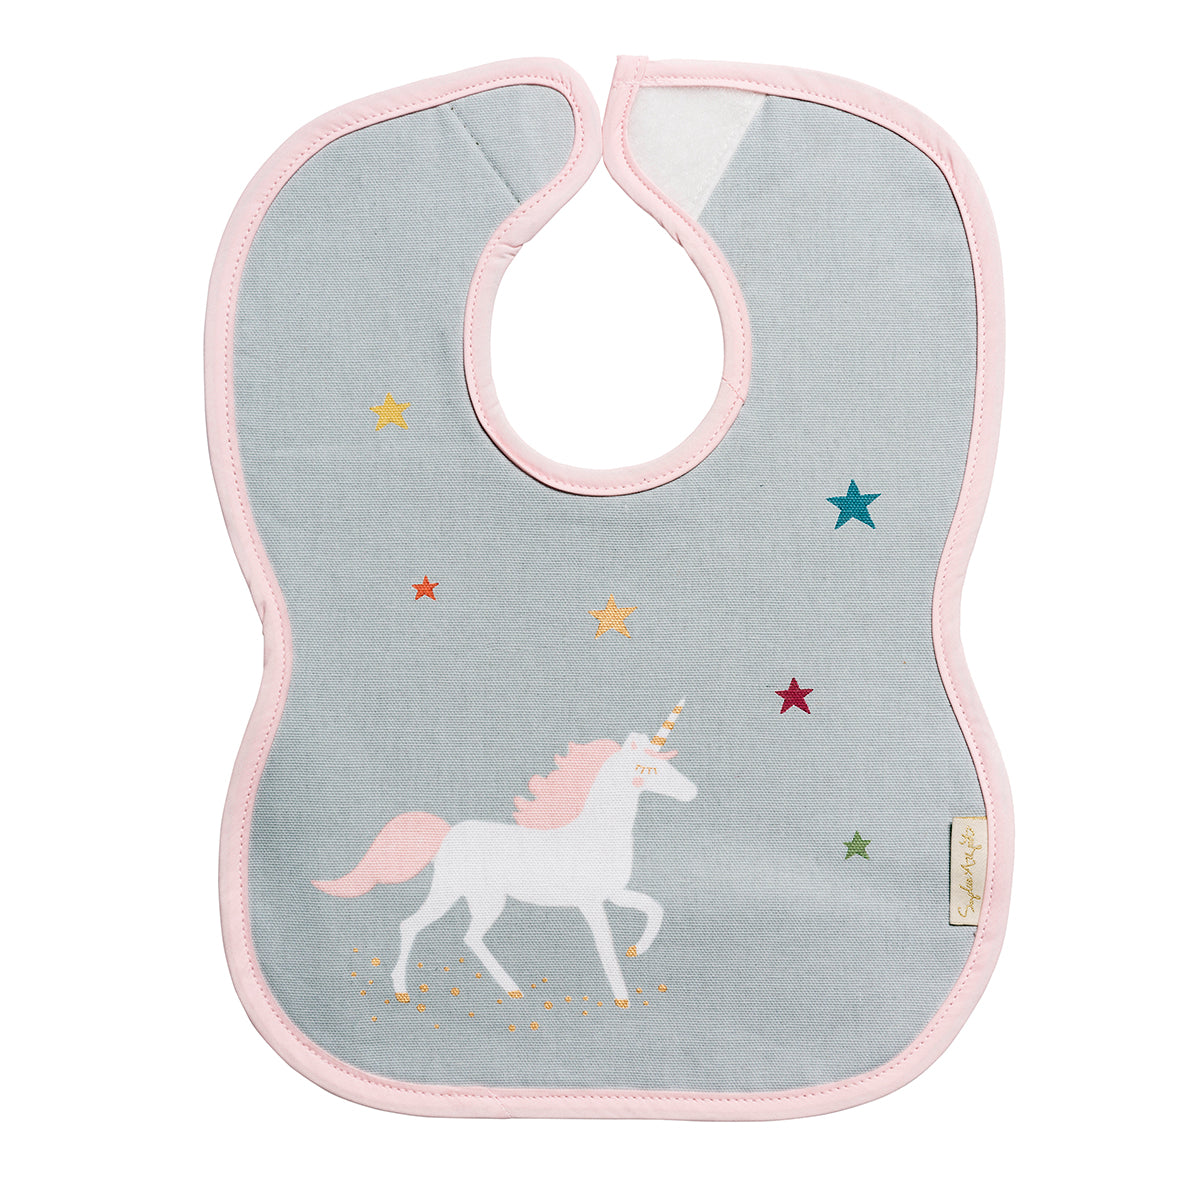 Unicorn Bibs (Set of 2)